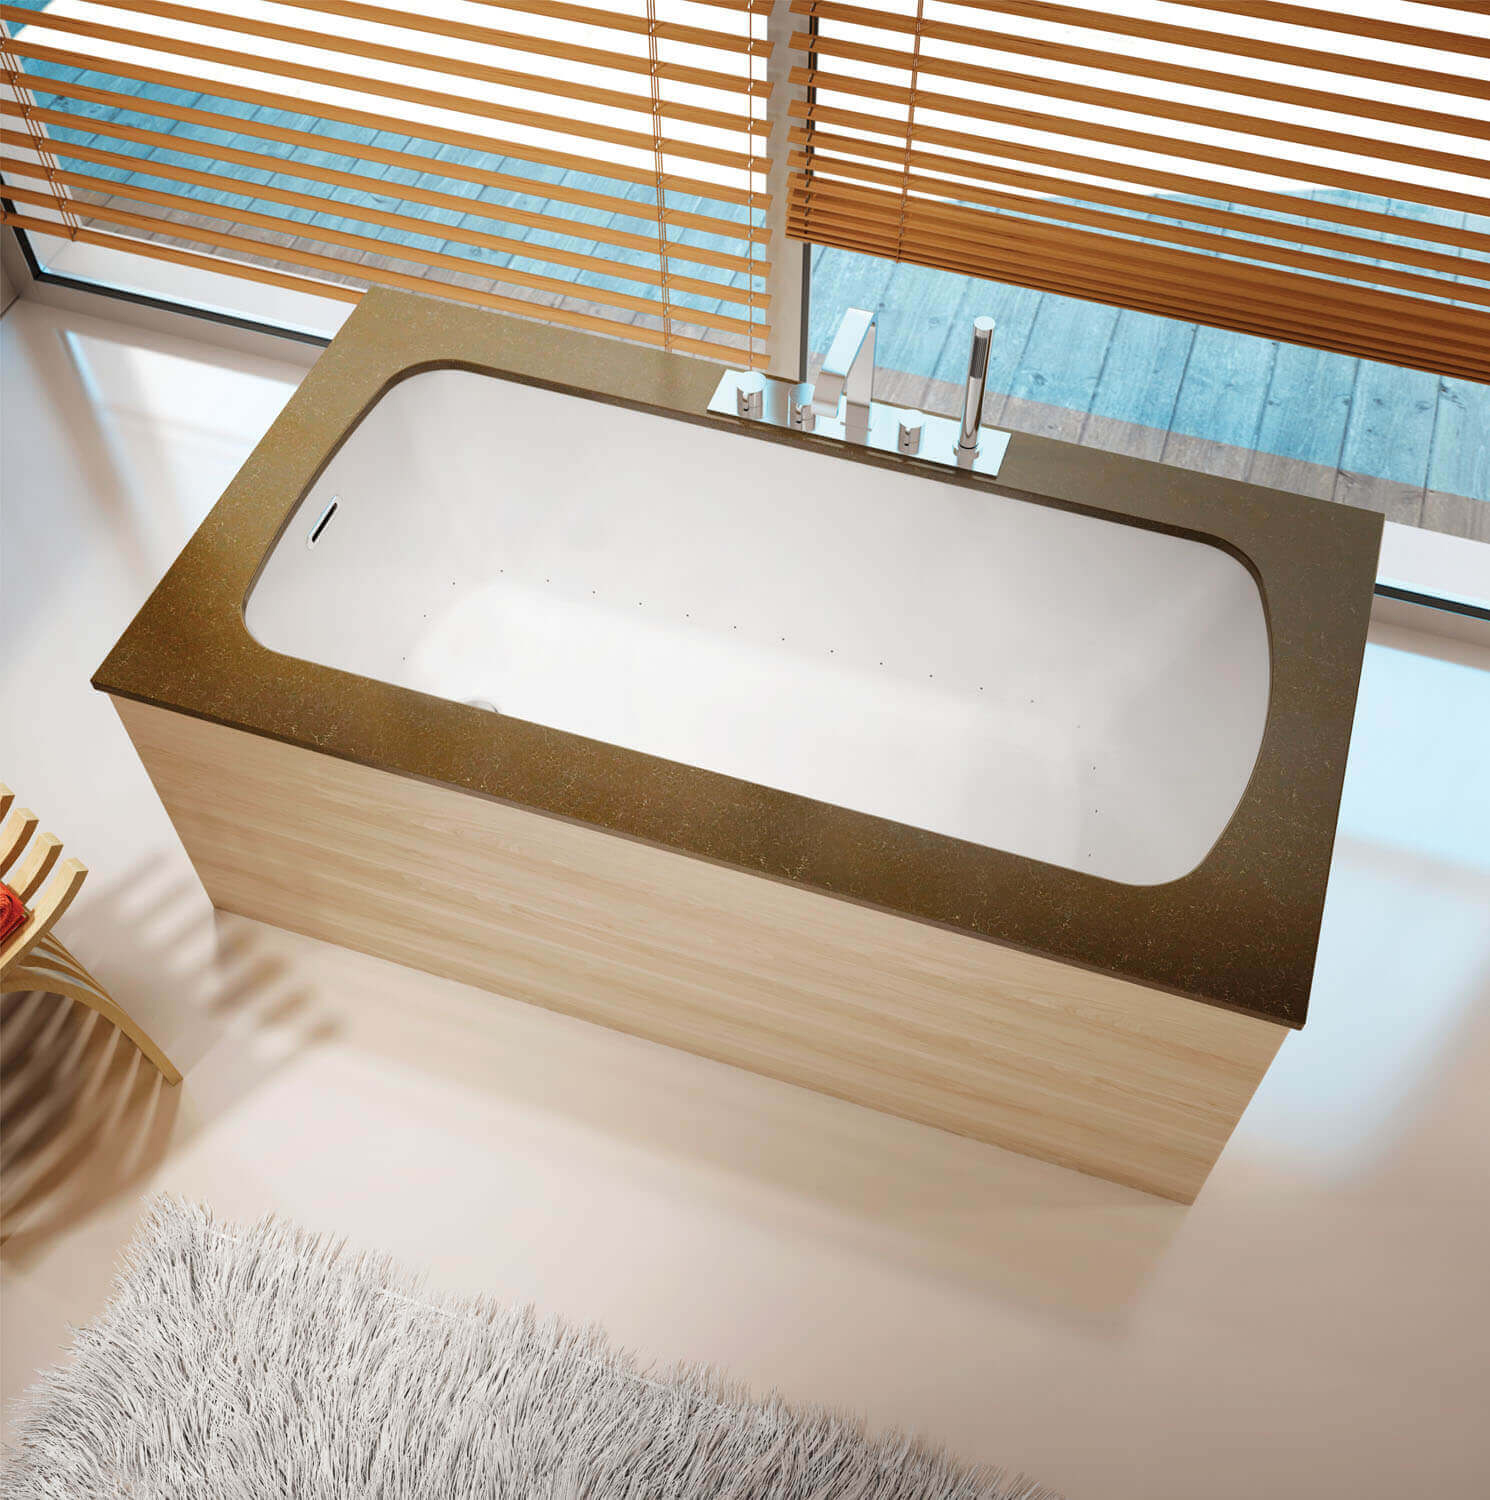 Monarch 6032 air jet bathtub for your modern bathroom